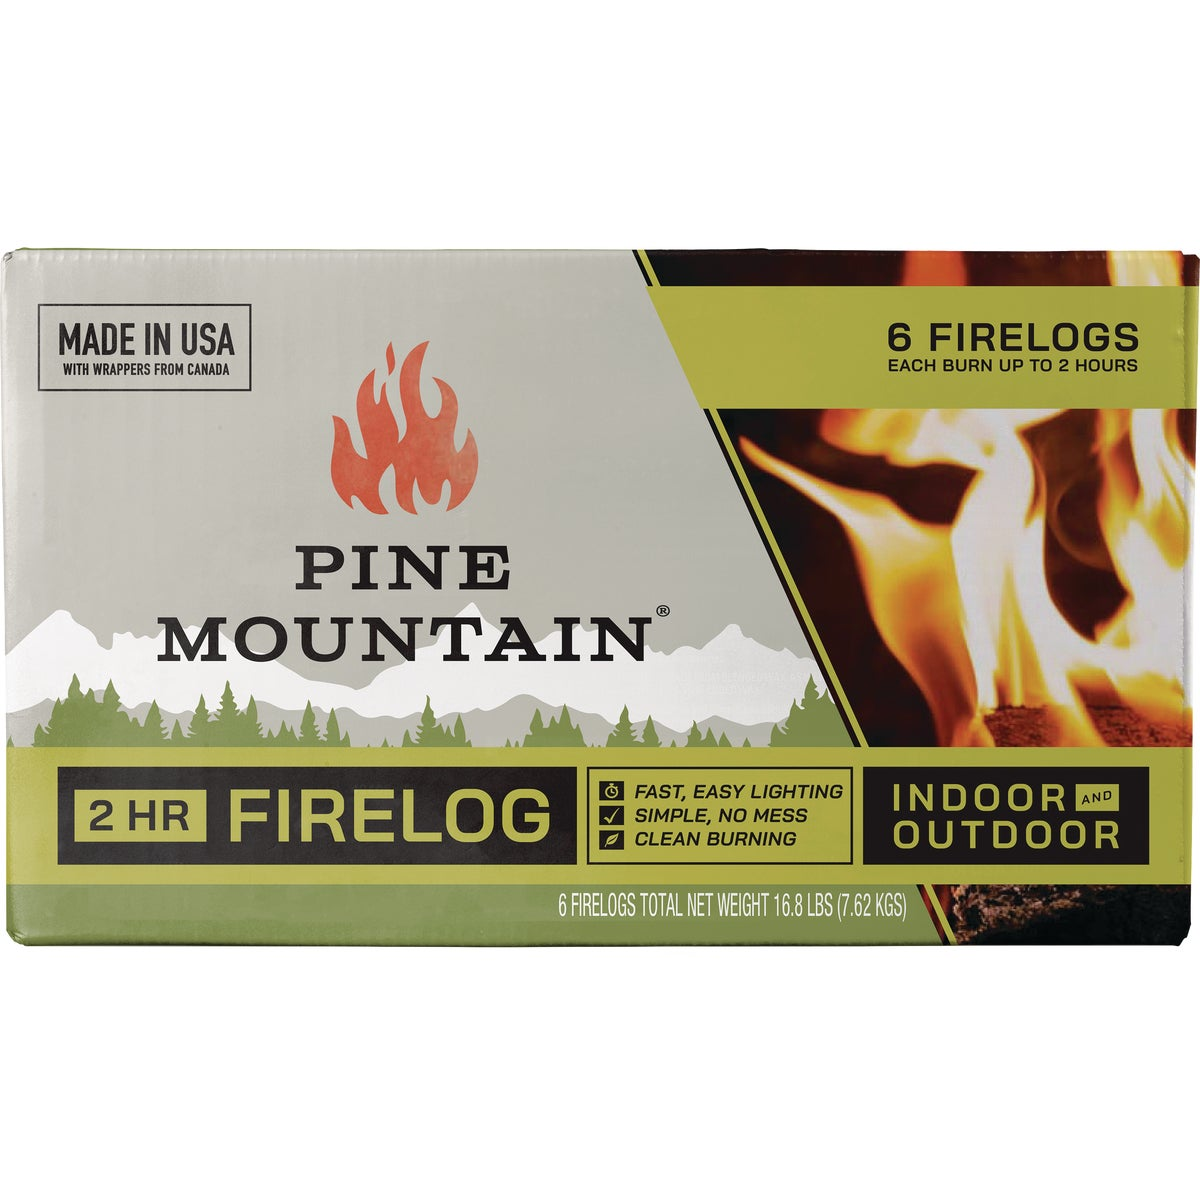 2 HOUR FIRE LOG - 4152501201 by Pine Mountain Corp